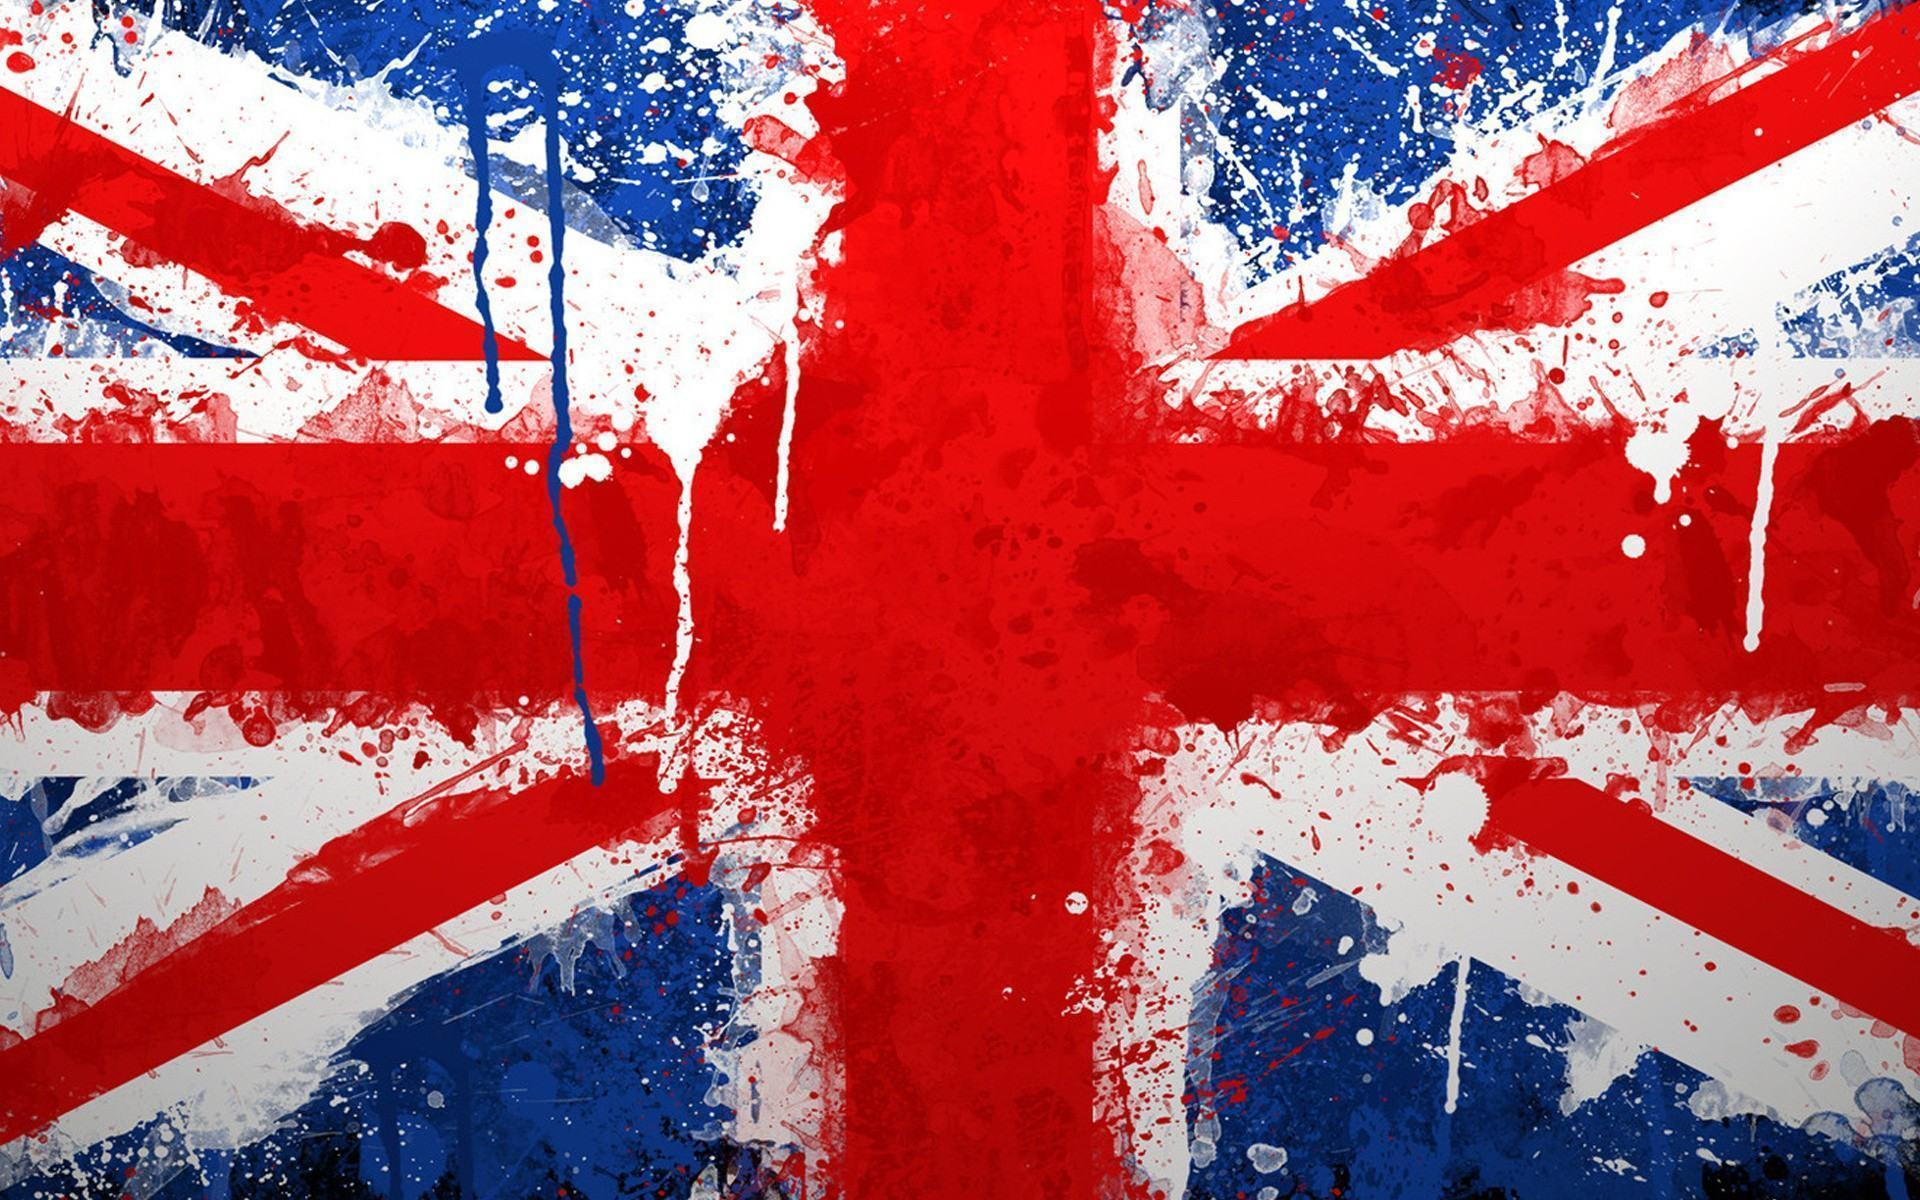 wallpapers backgrounds british - photo #1